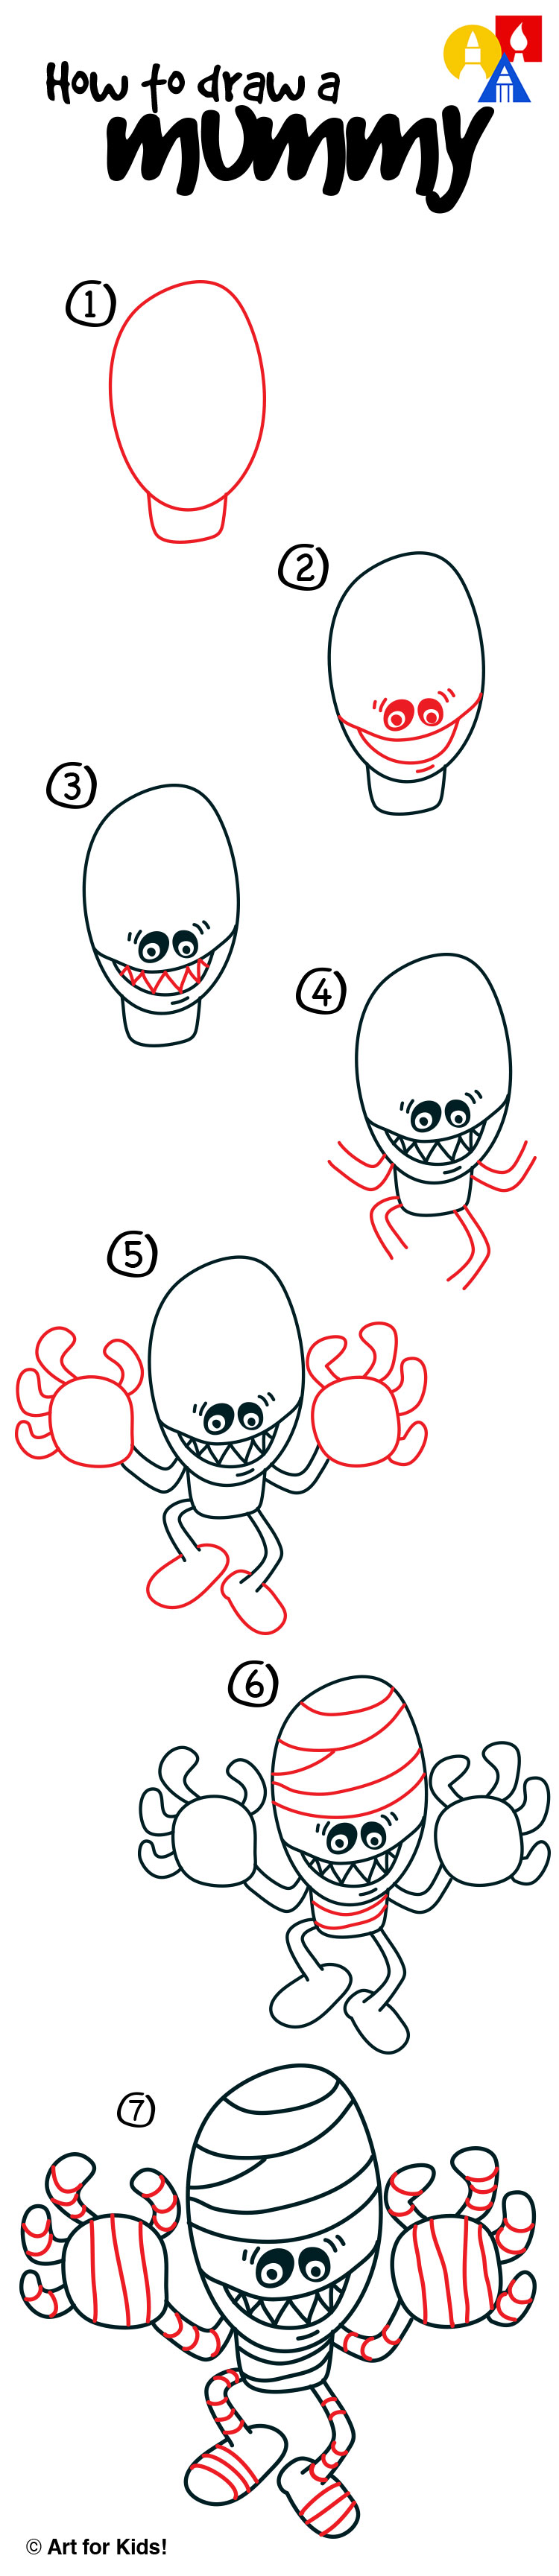 How To Draw A Mummy - Art For Kids Hub -